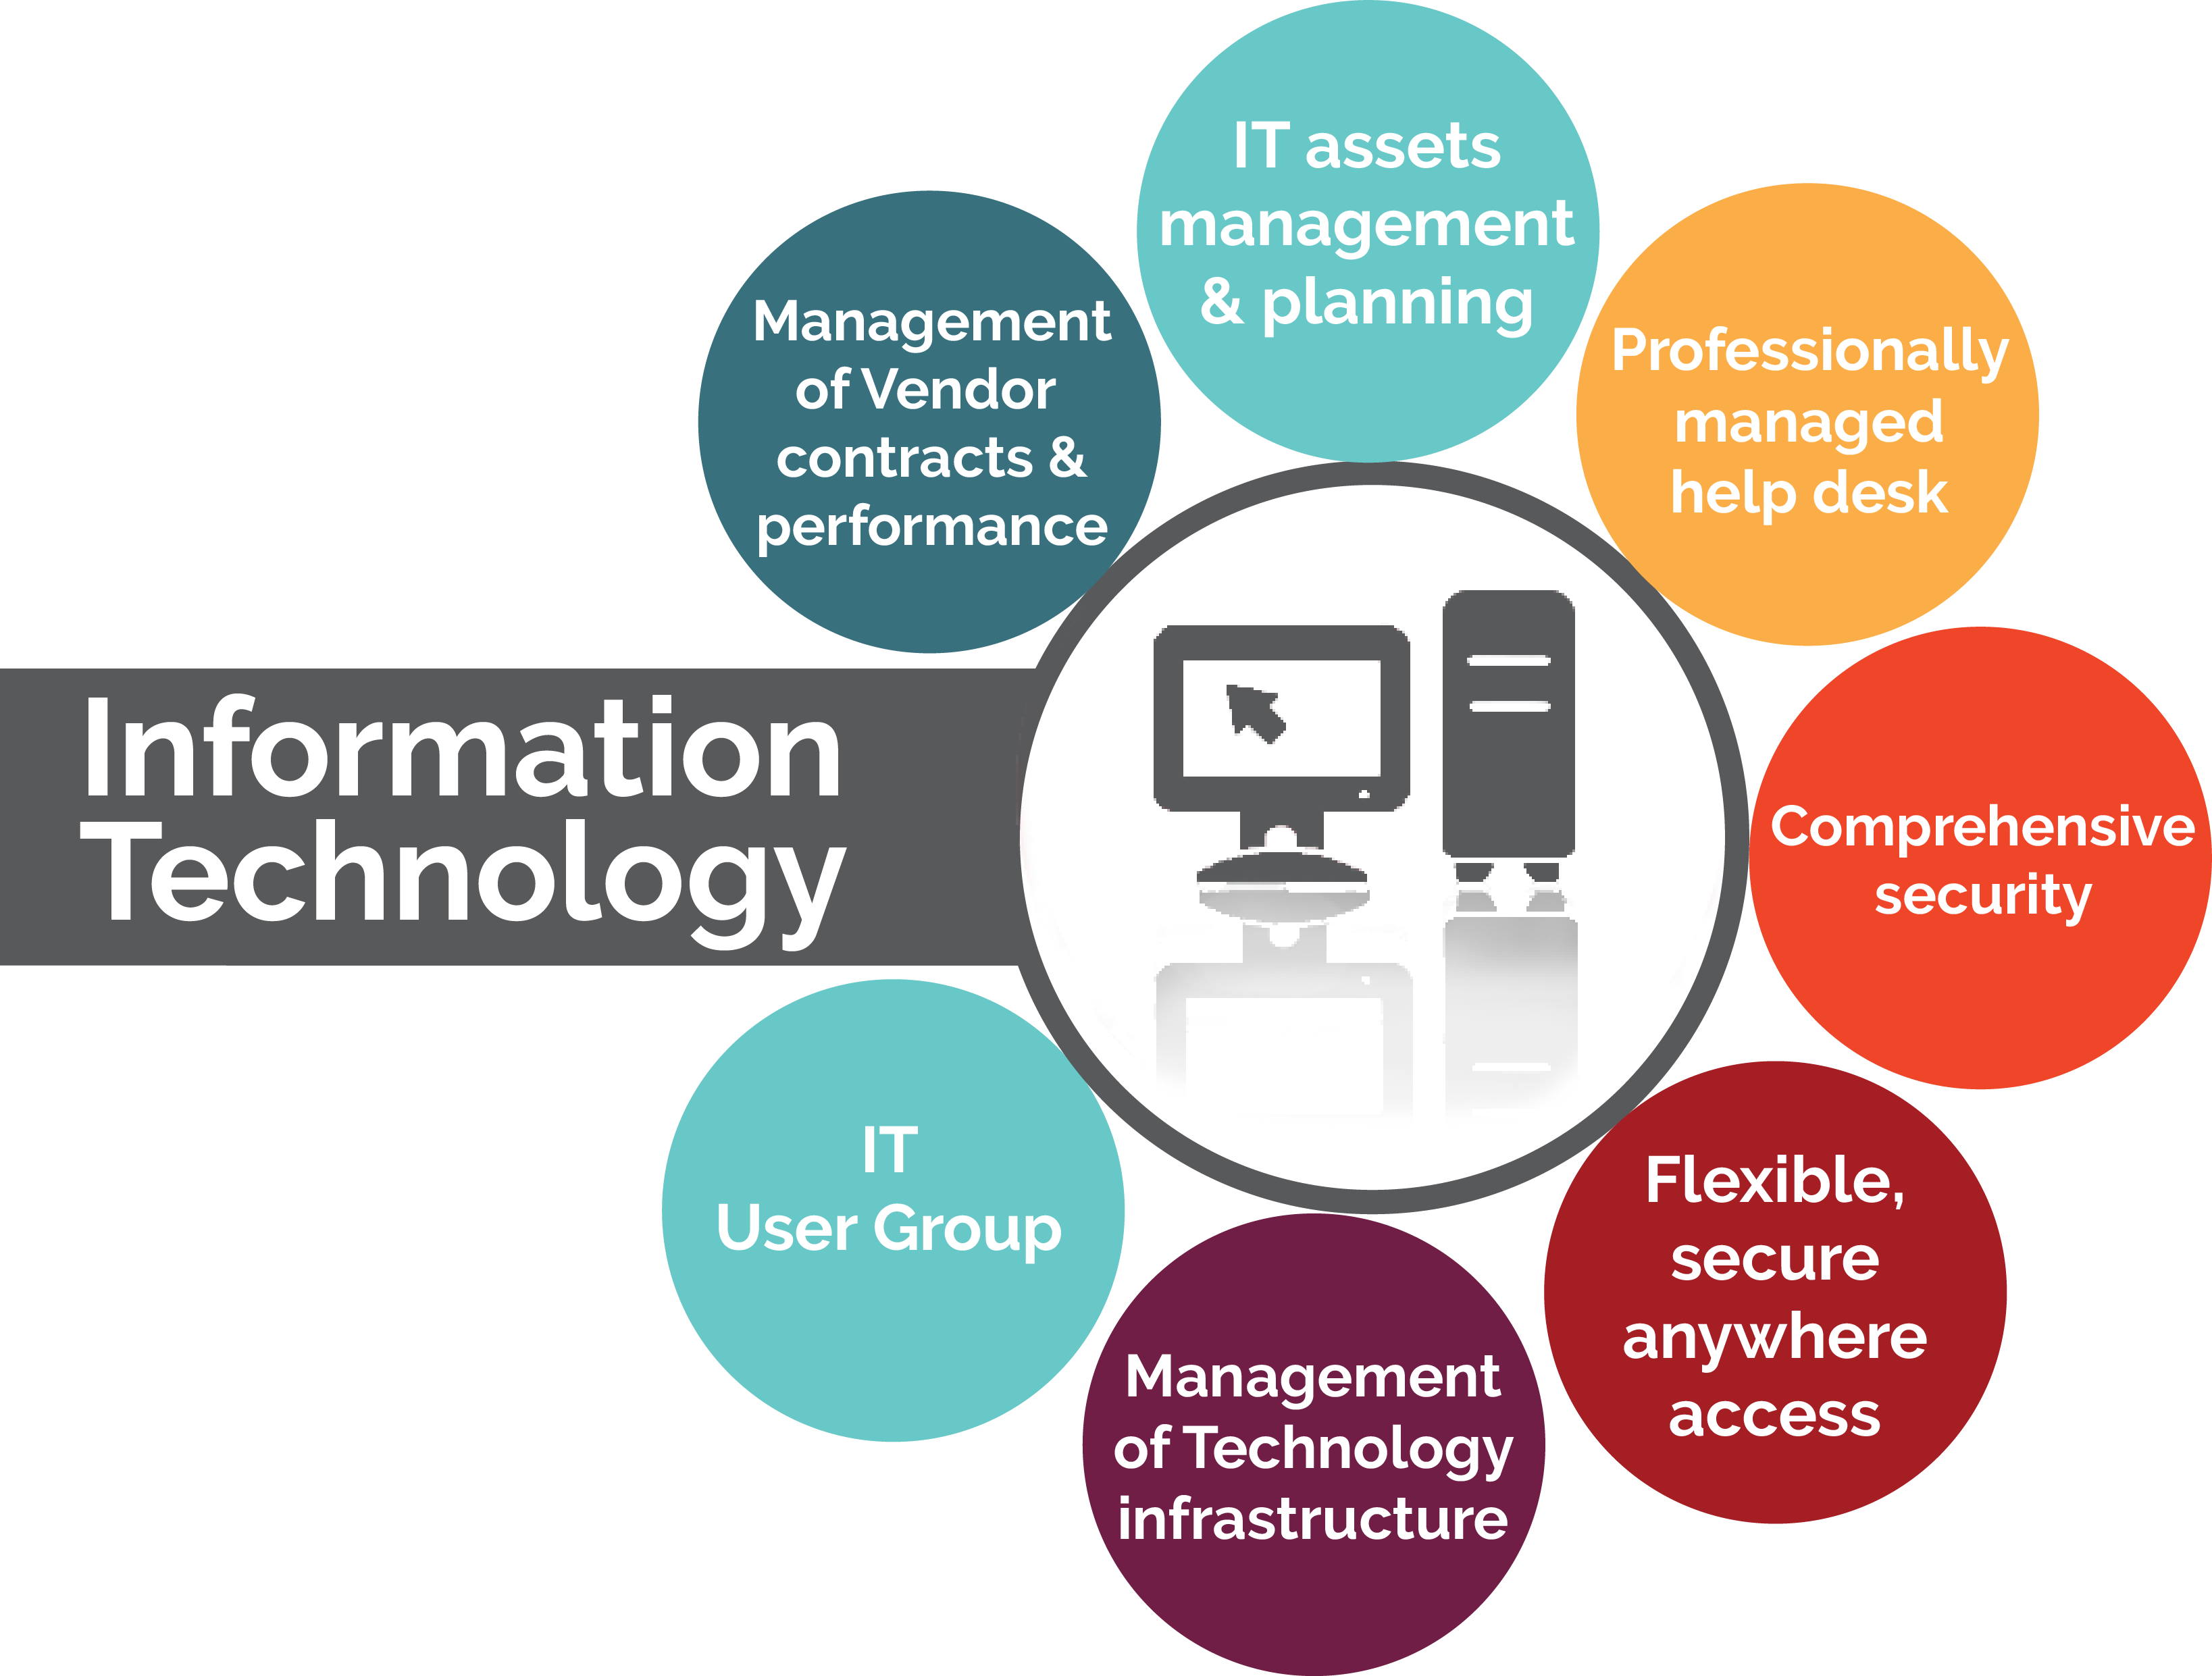 features of information technology Information technology (it) is the use of any computers, storage, networking and other physical devices, infrastructure and processes to create, process, store, secure and exchange all forms of electronic data.